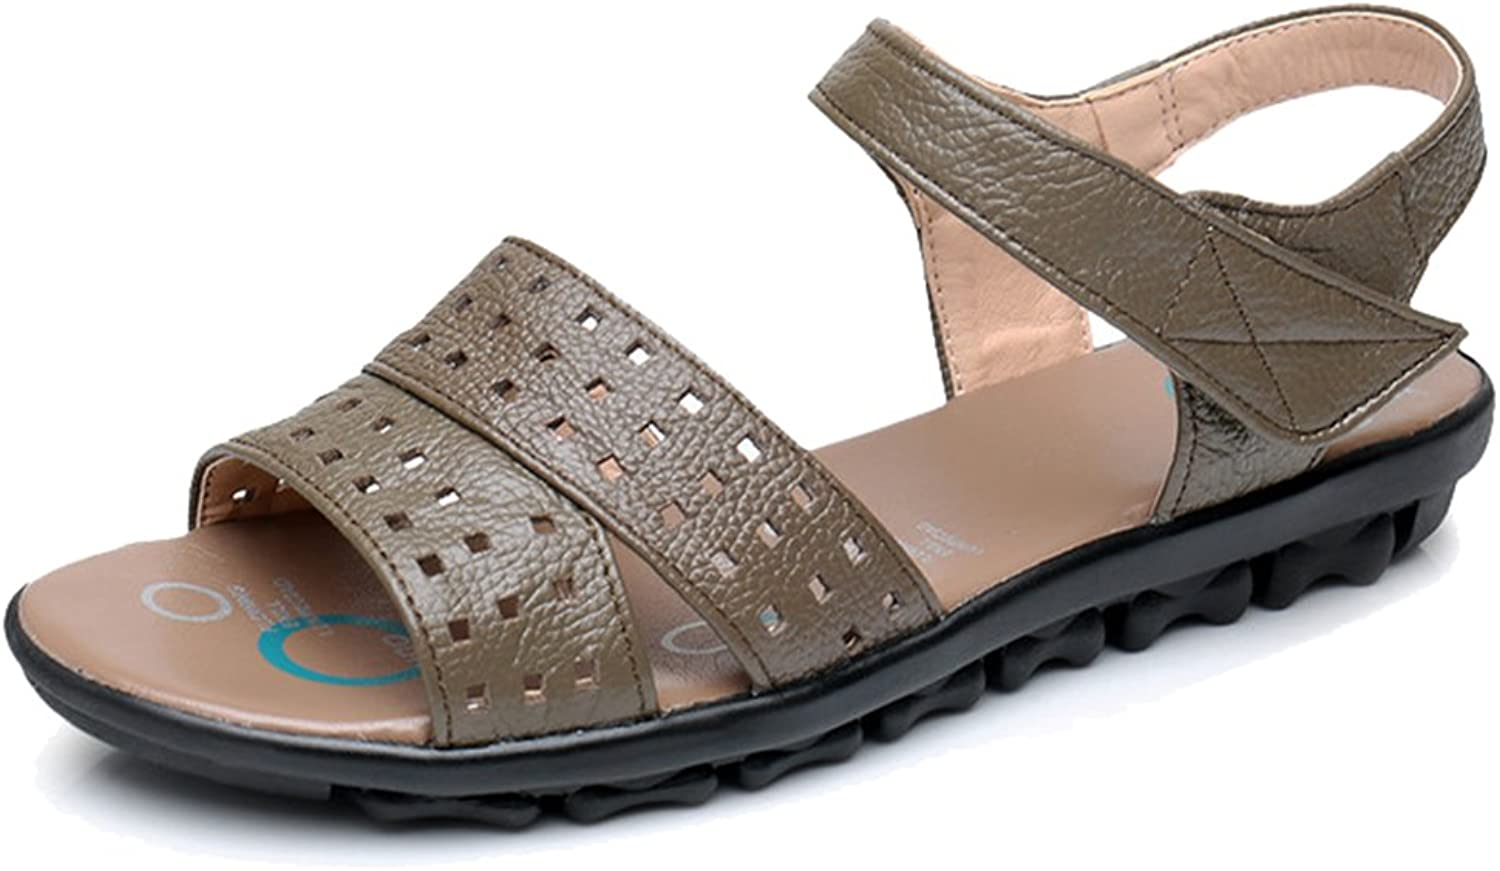 Femaroly Female Middle-Aged Sandals Lady shoes Non-Slip Leather Beach shoes